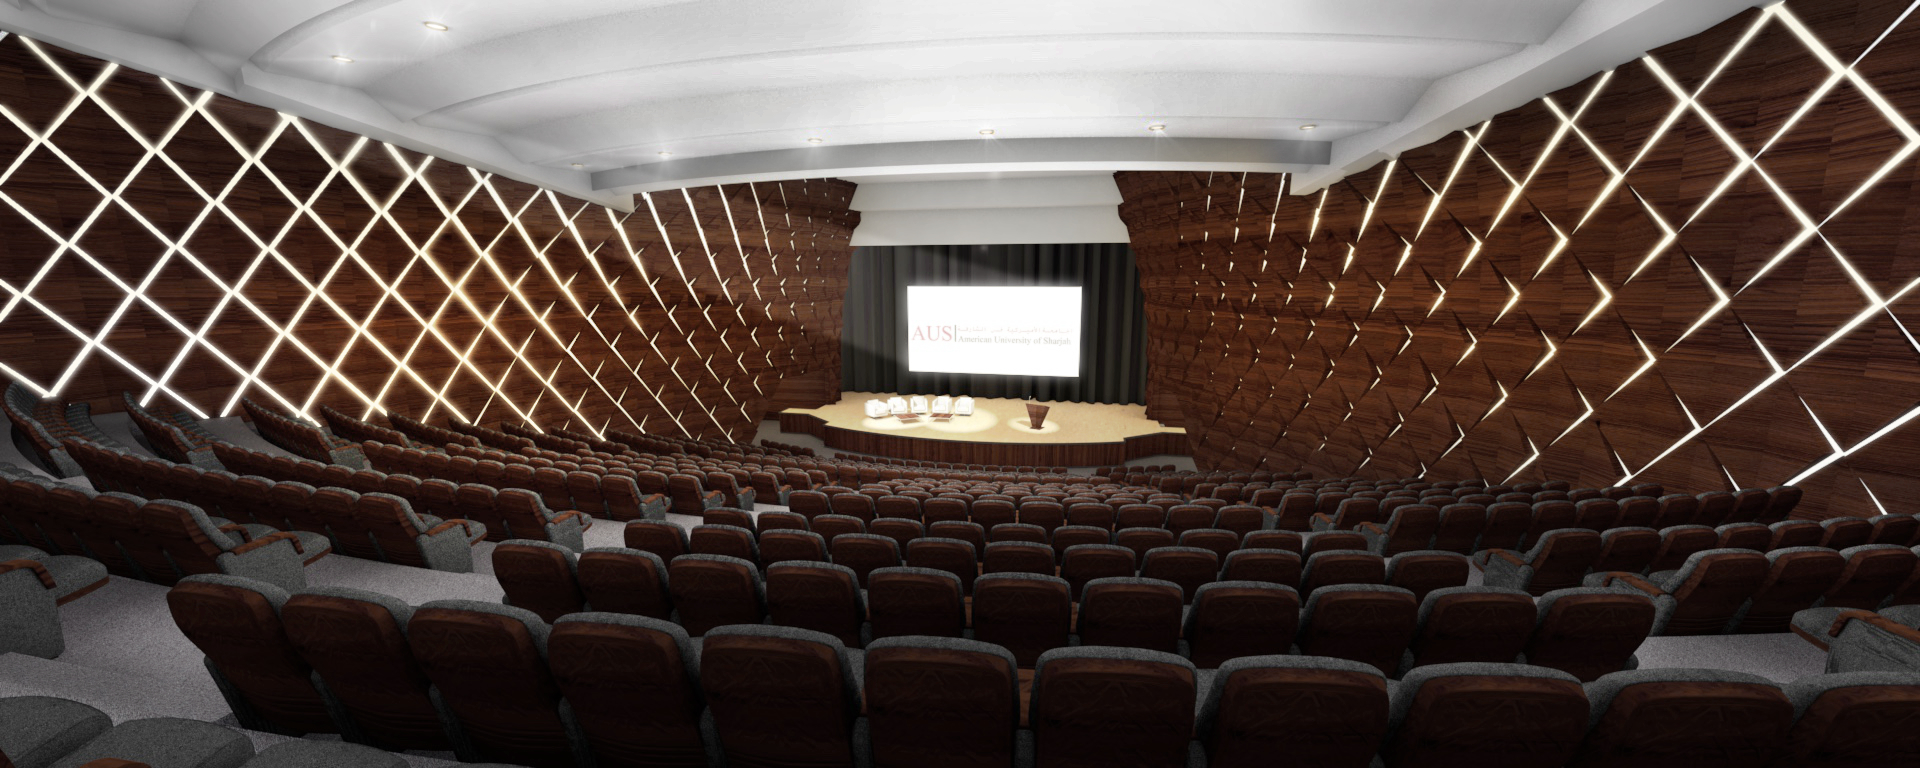 MR 2 - AUS Auditorium 1